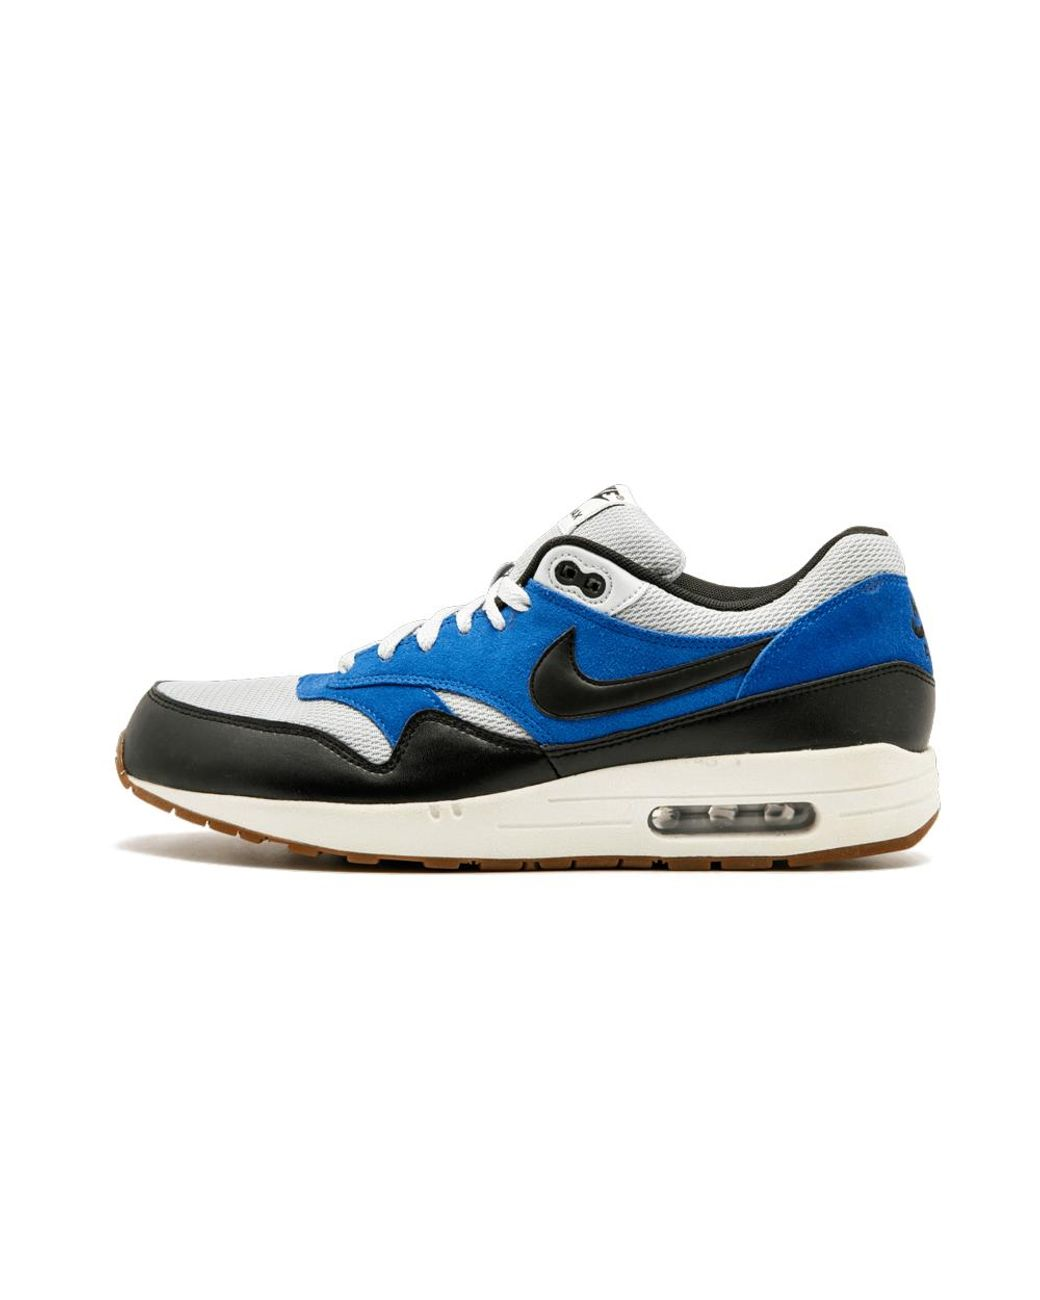 Nike Air Max 1 Essential Shoes in Blue for Men - Lyst